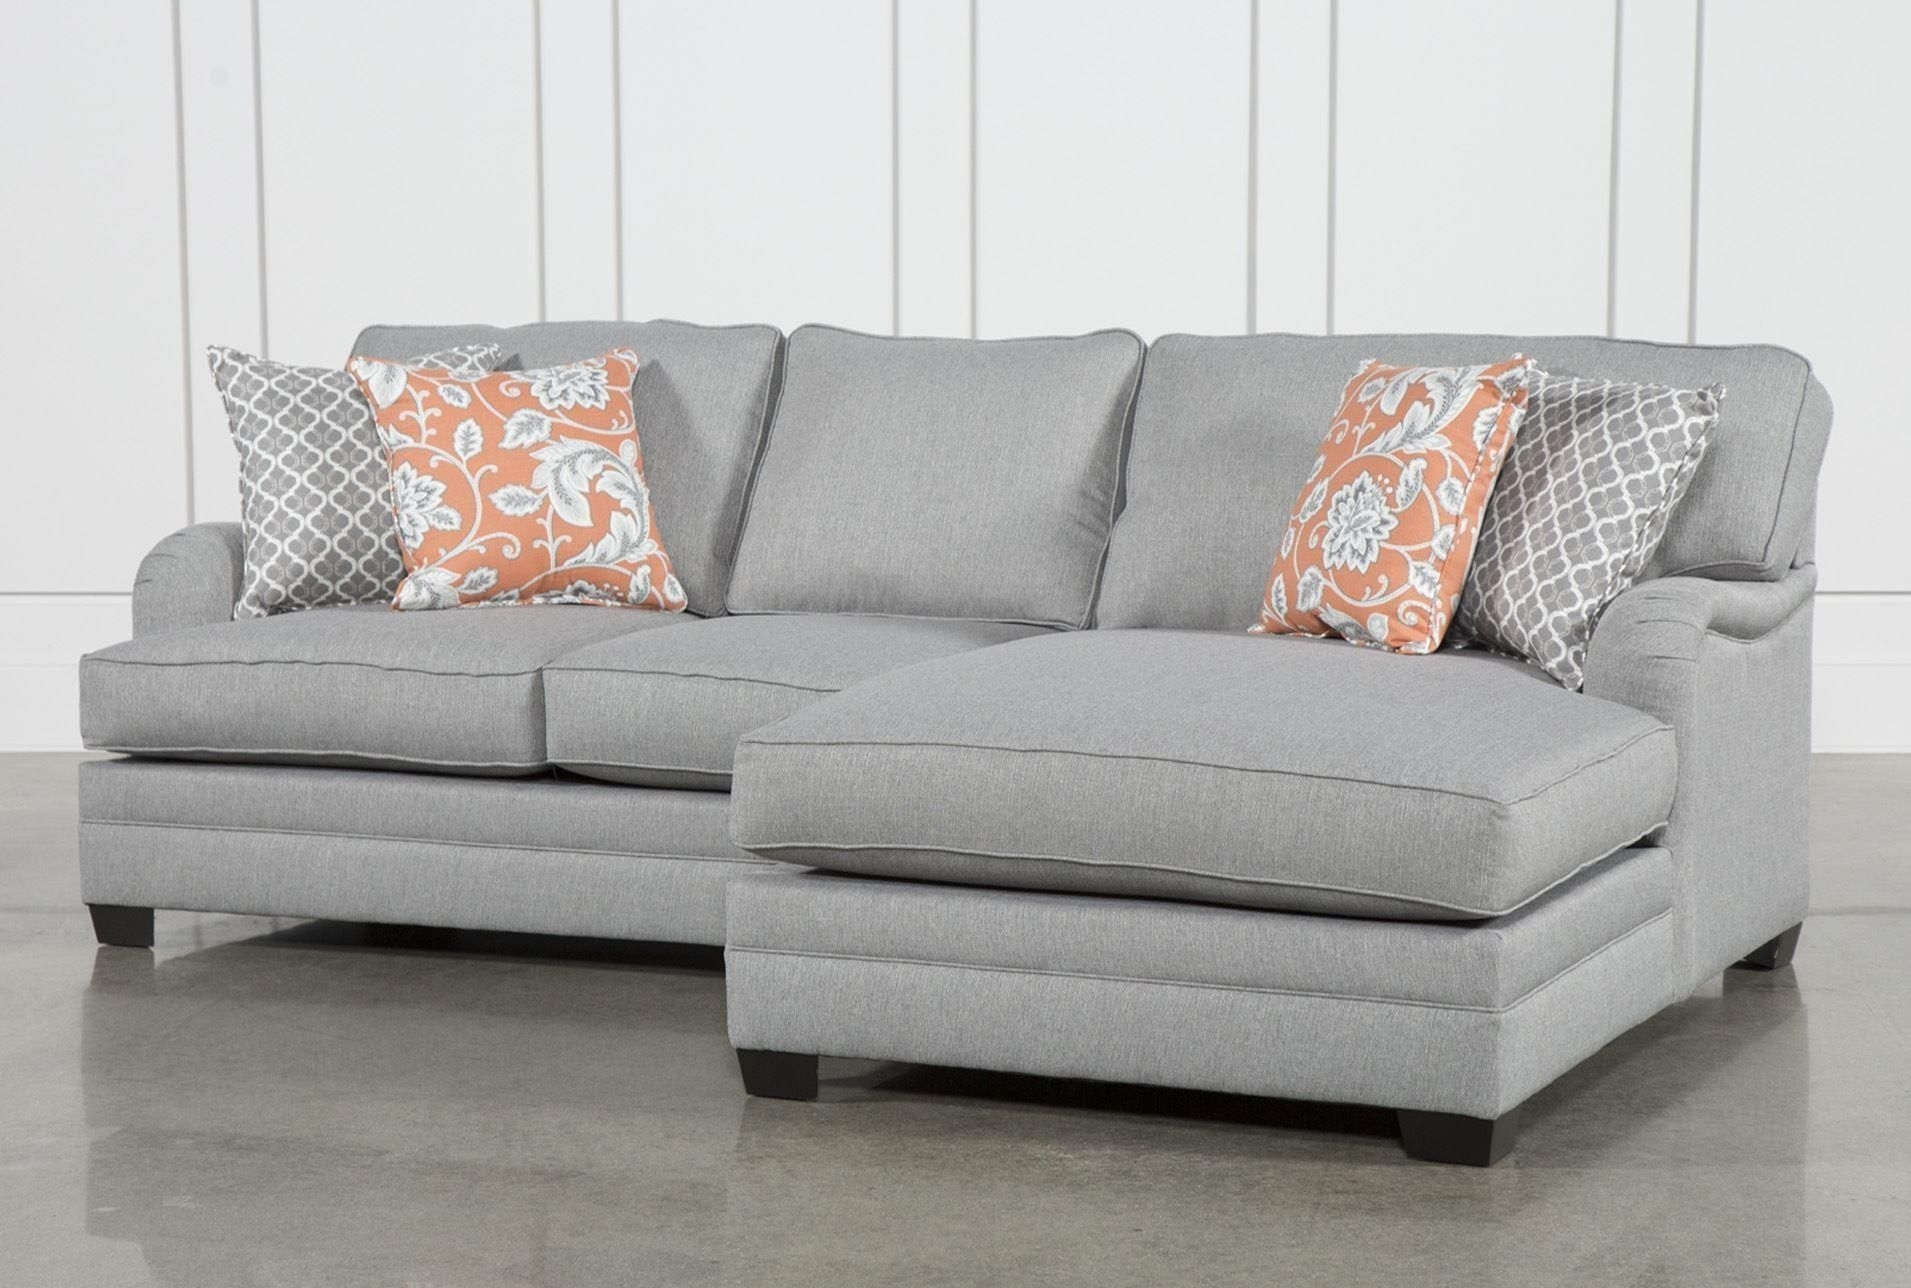 Marissa 2 Piece Sectional W/raf Chaise | Oakdell House | Pinterest For Egan Ii Cement Sofa Sectionals With Reversible Chaise (Image 14 of 25)